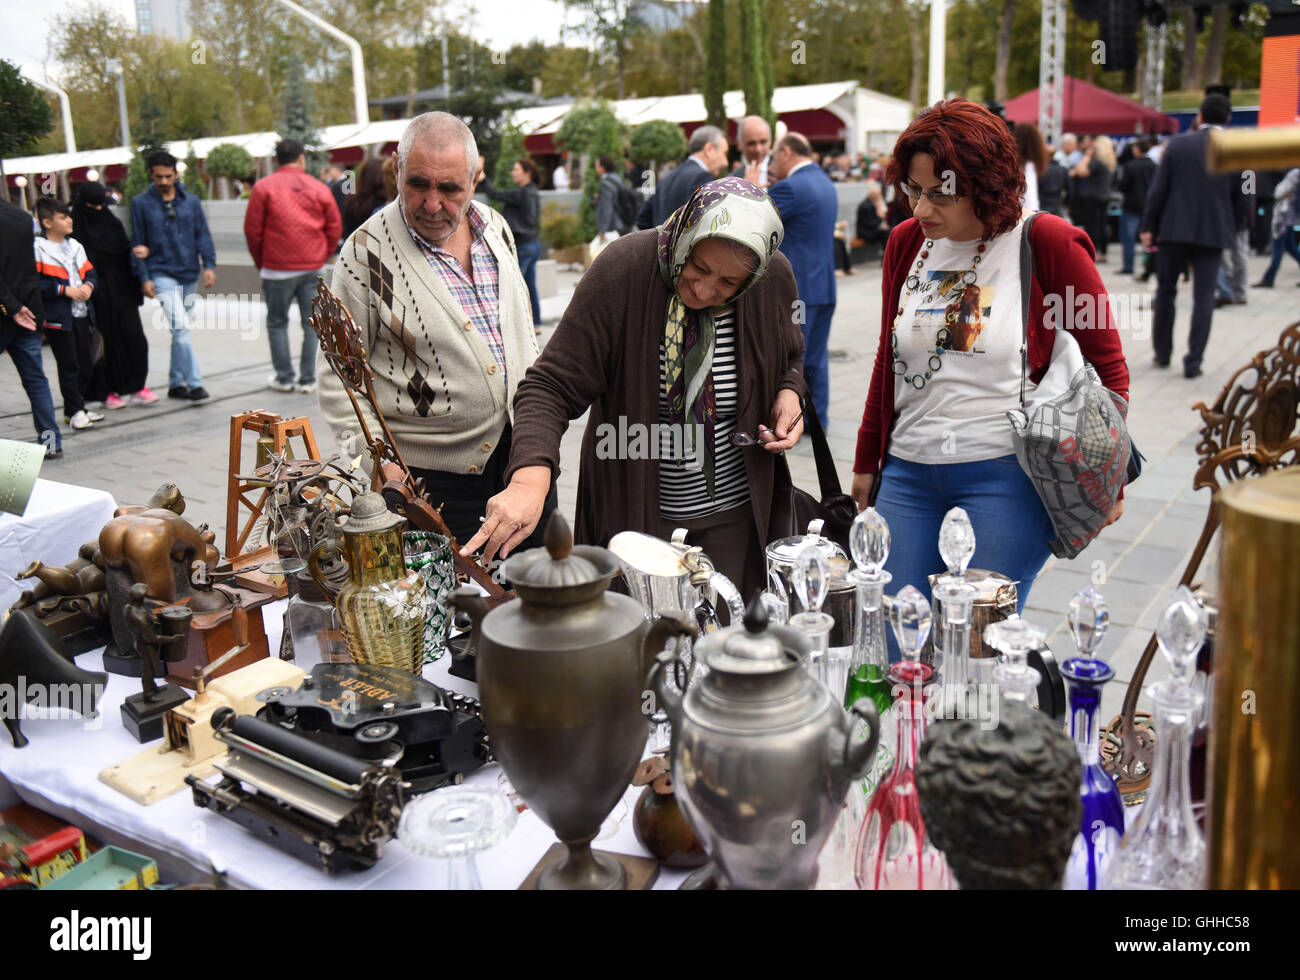 (160928) -- ISTANBUL, Sept. 28, 2016(Xinhua) -- Tourists watch antiques at Taksim square in Istanbul, Turkey, Sept. - Stock Image